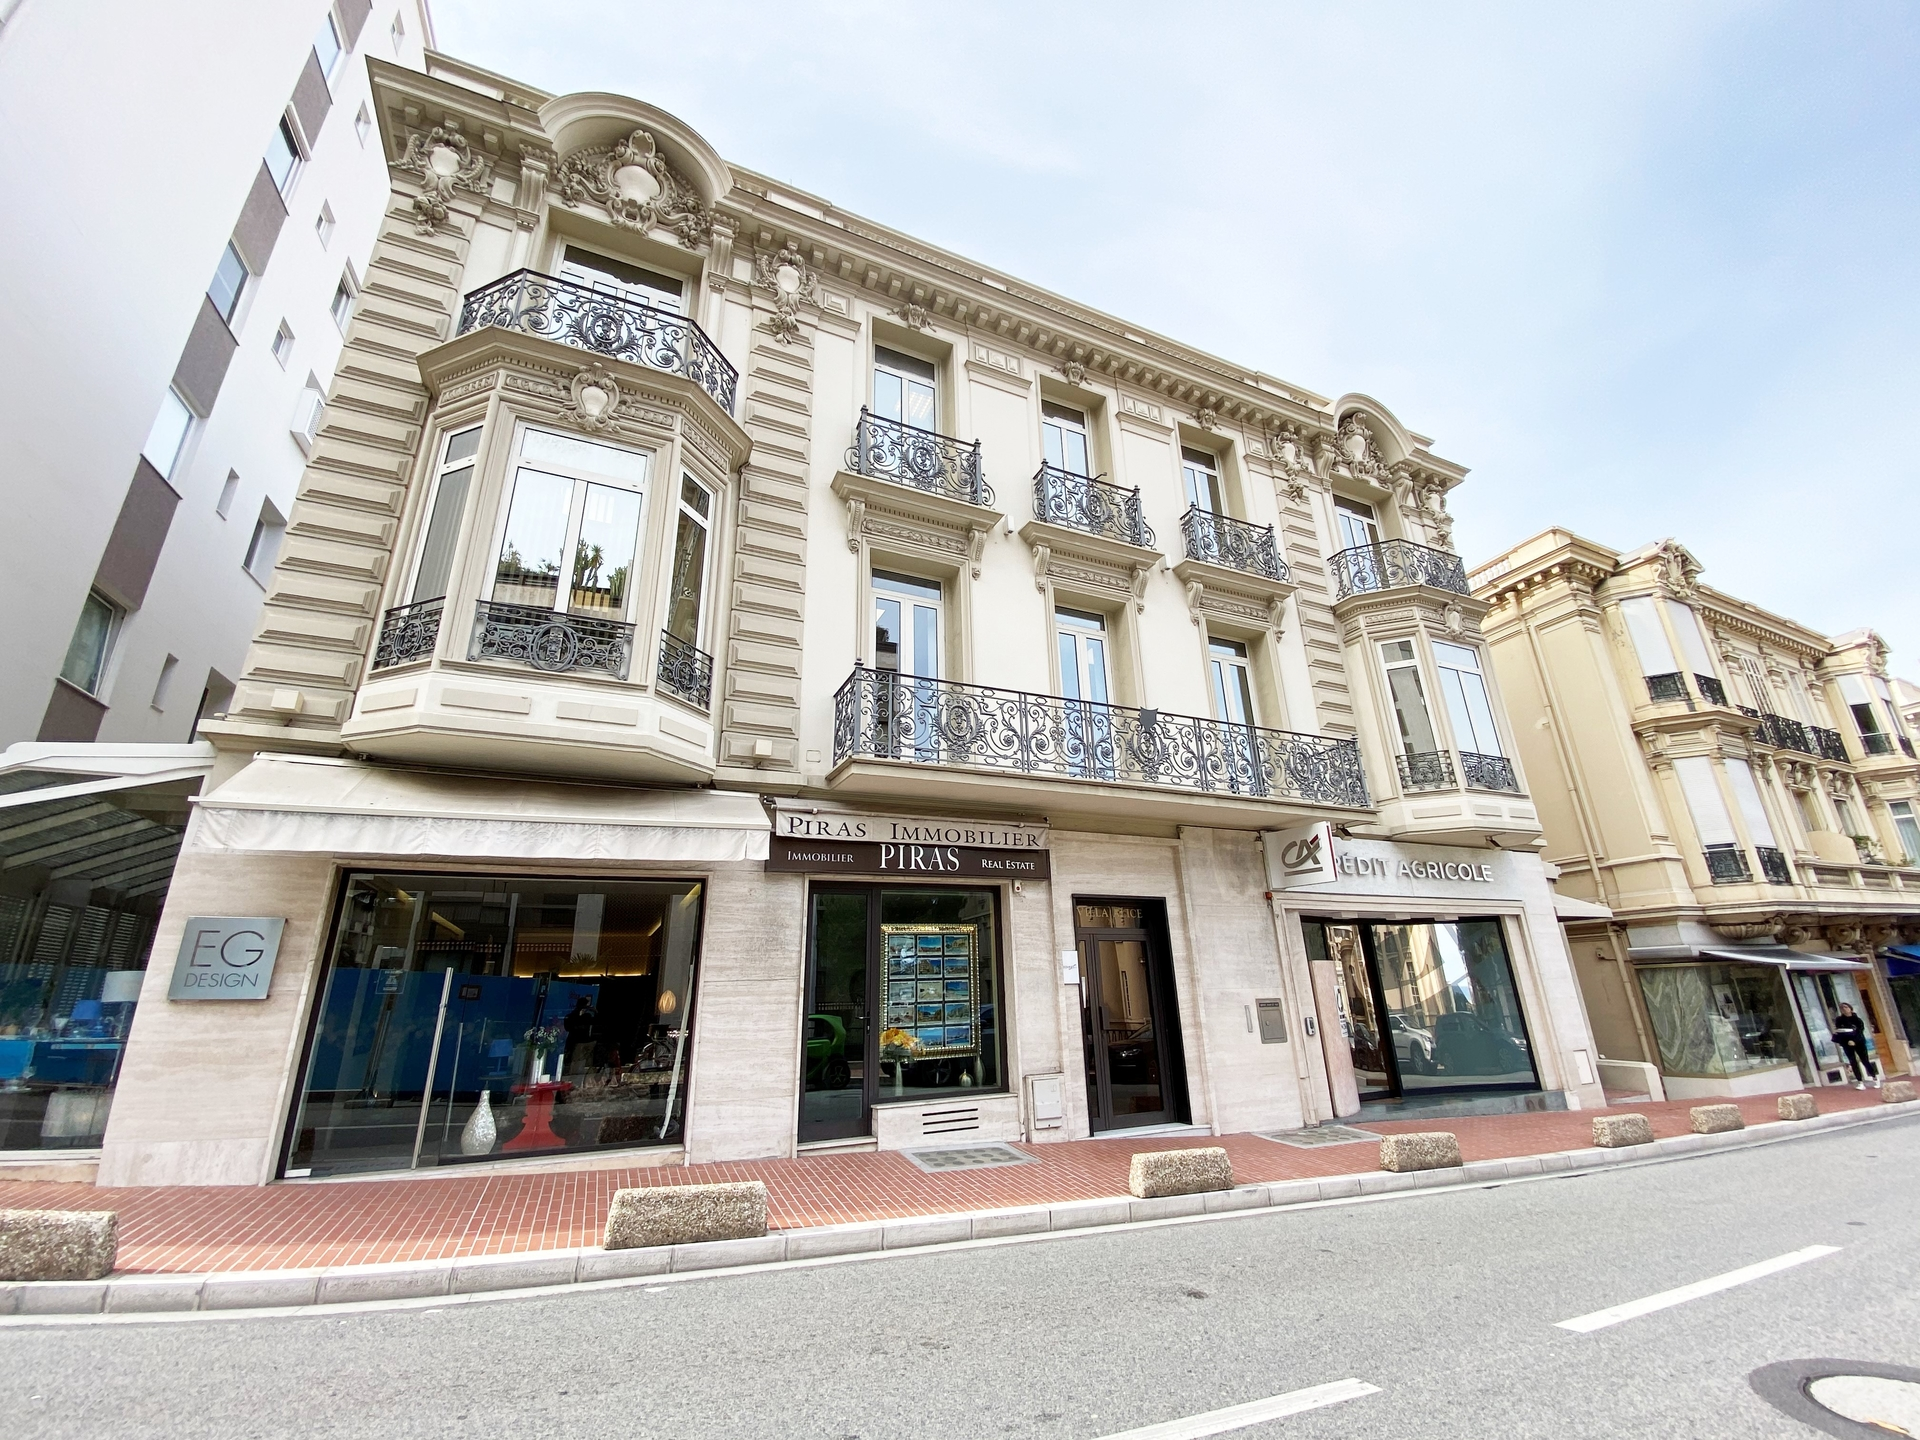 Boutique For sale - Near Casino - Commercial leasehold